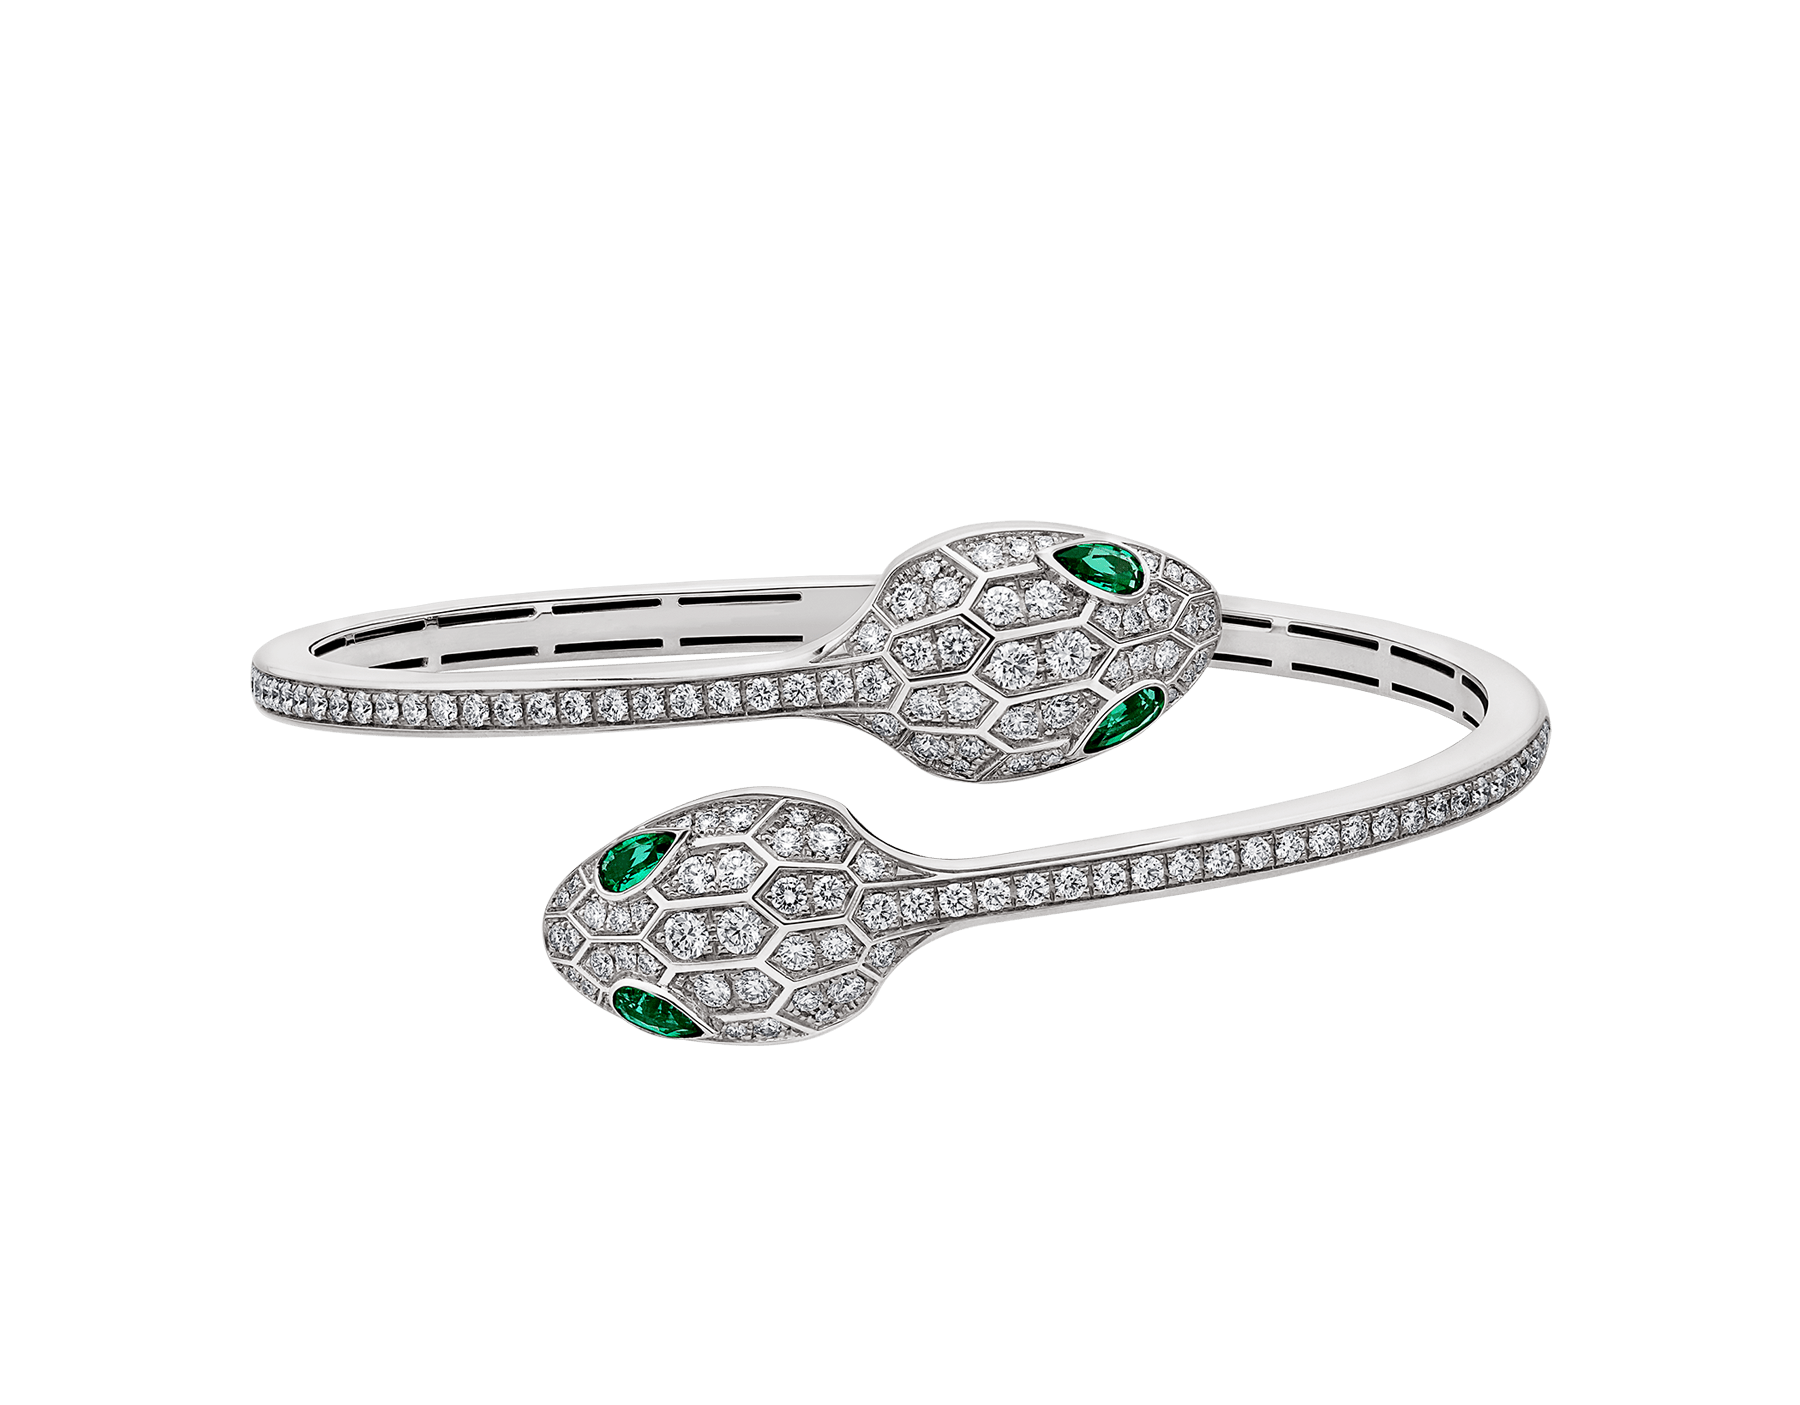 Serpenti 18 kt white gold bracelet set with emerald eyes and pavé diamonds. BR858551 image 2